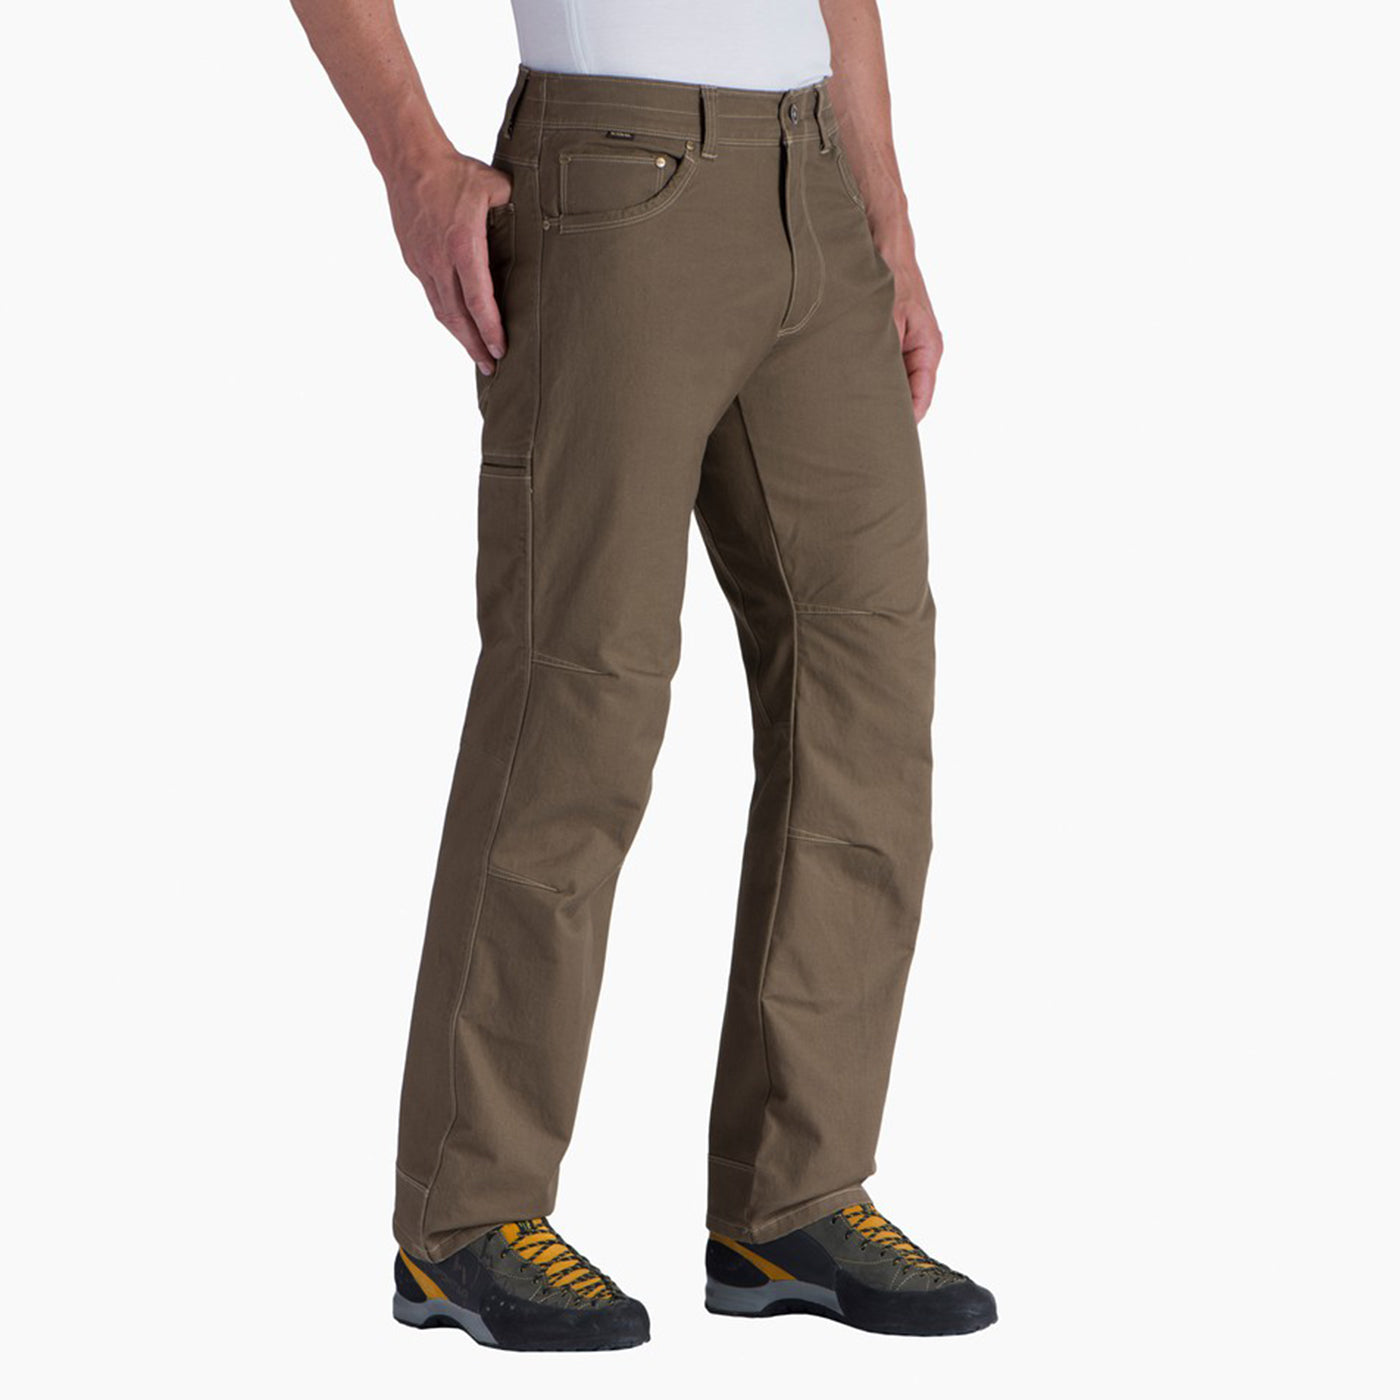 kuhl rydr pant mens on model three quarter view in color brown khaki